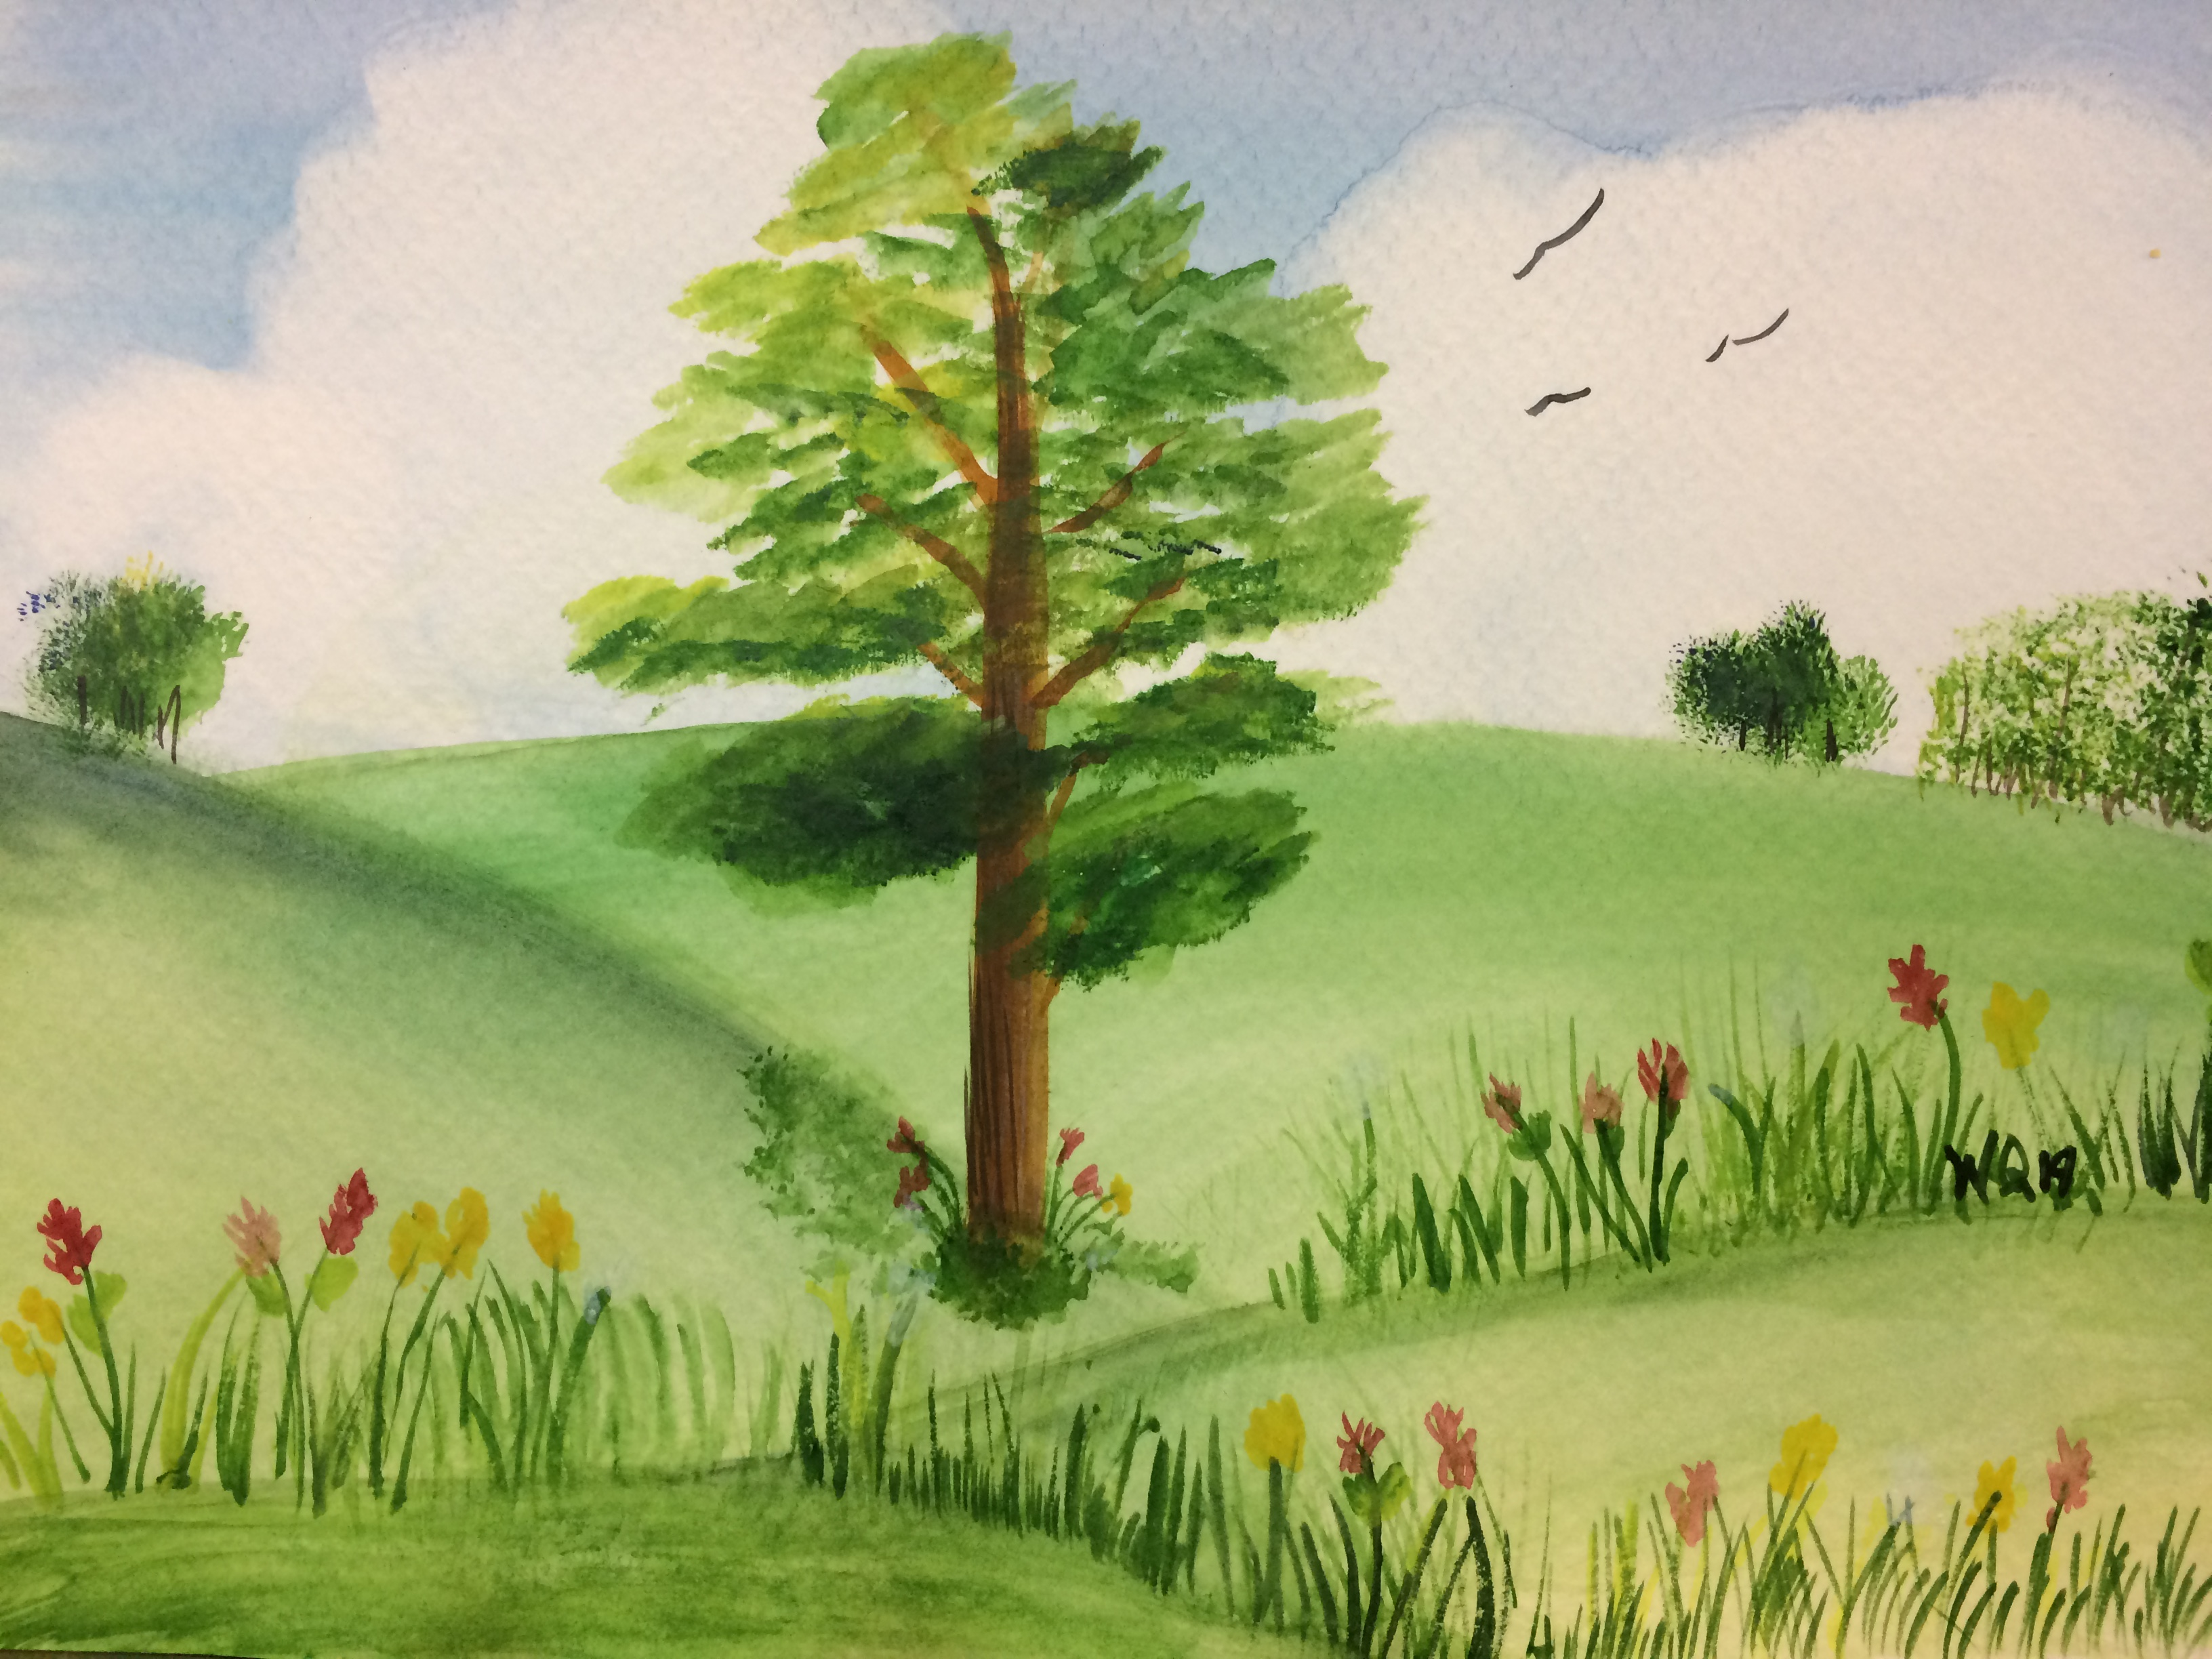 watercolour painting of landscape with trees, hills, grass and birds.